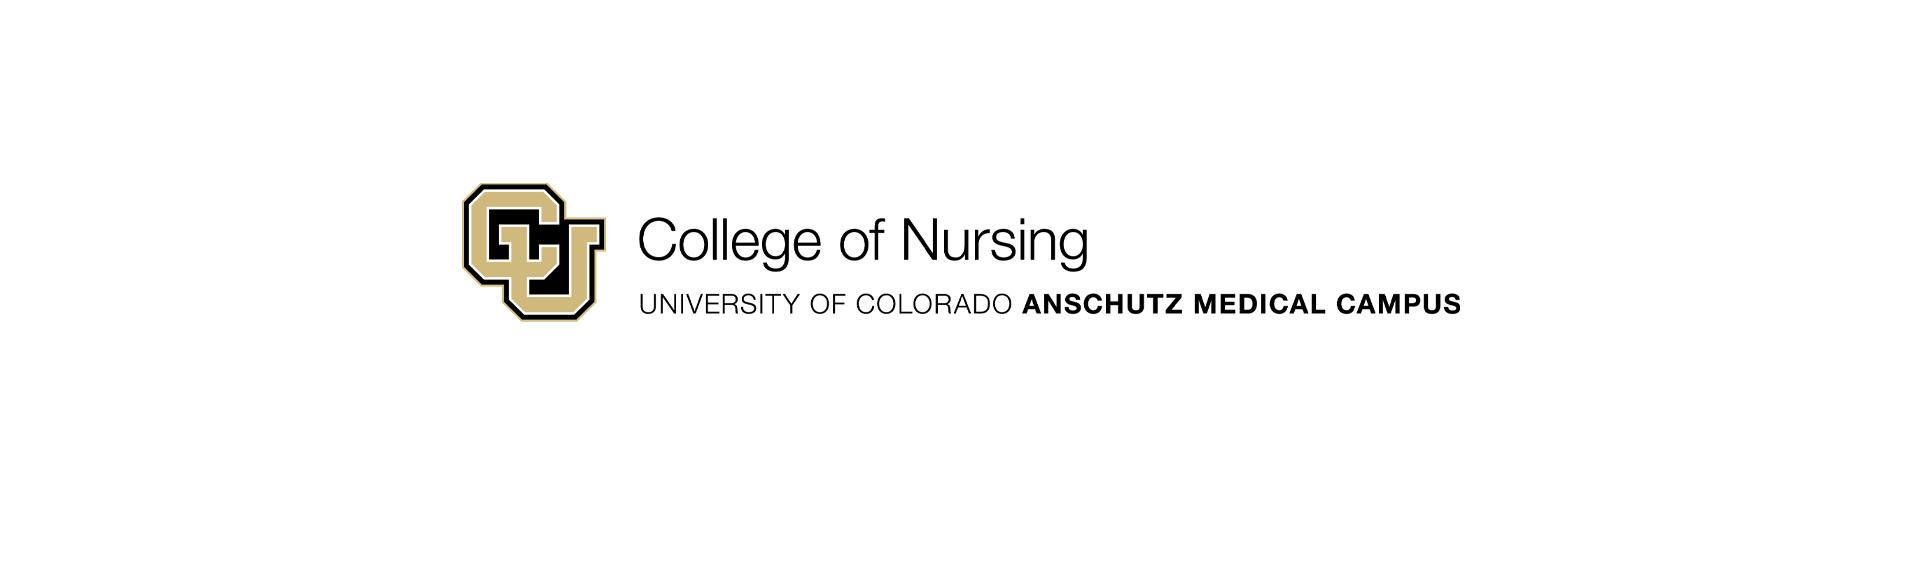 College of Nursing Press Release